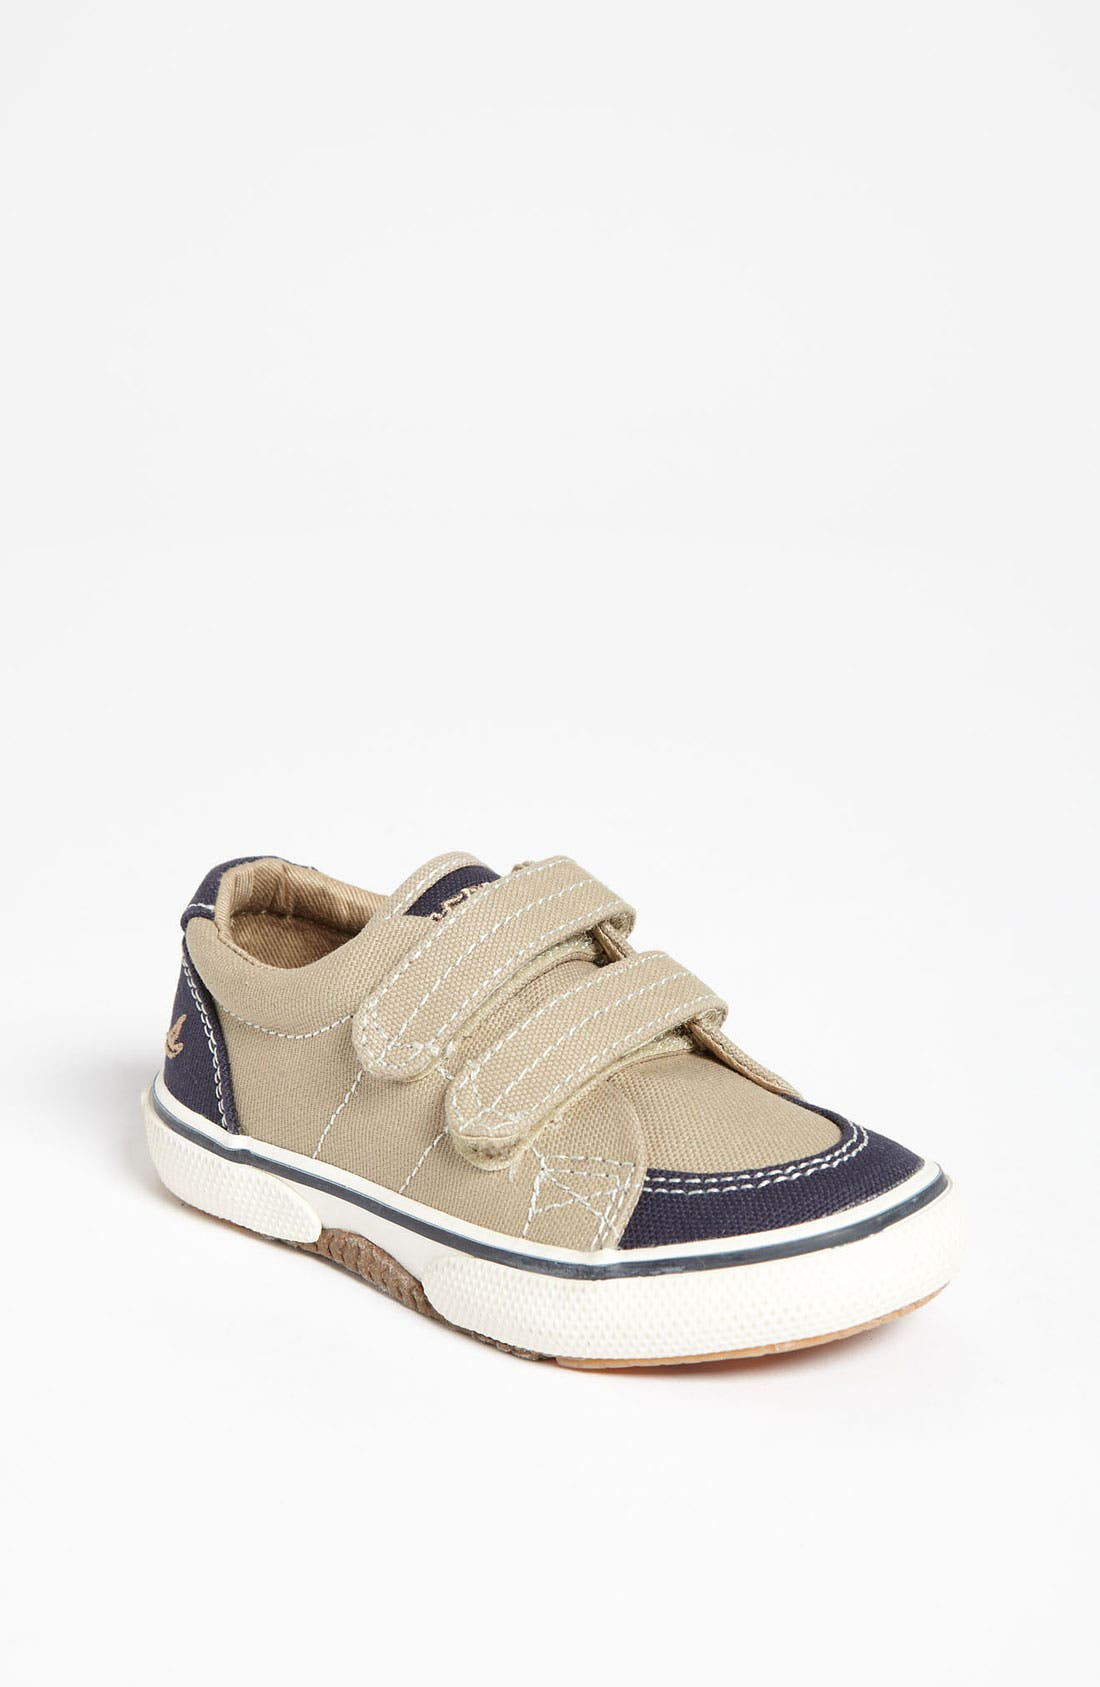 Sperry Top-Sider<sup>®</sup> Kids 'Halyard' Sneaker,                             Main thumbnail 4, color,